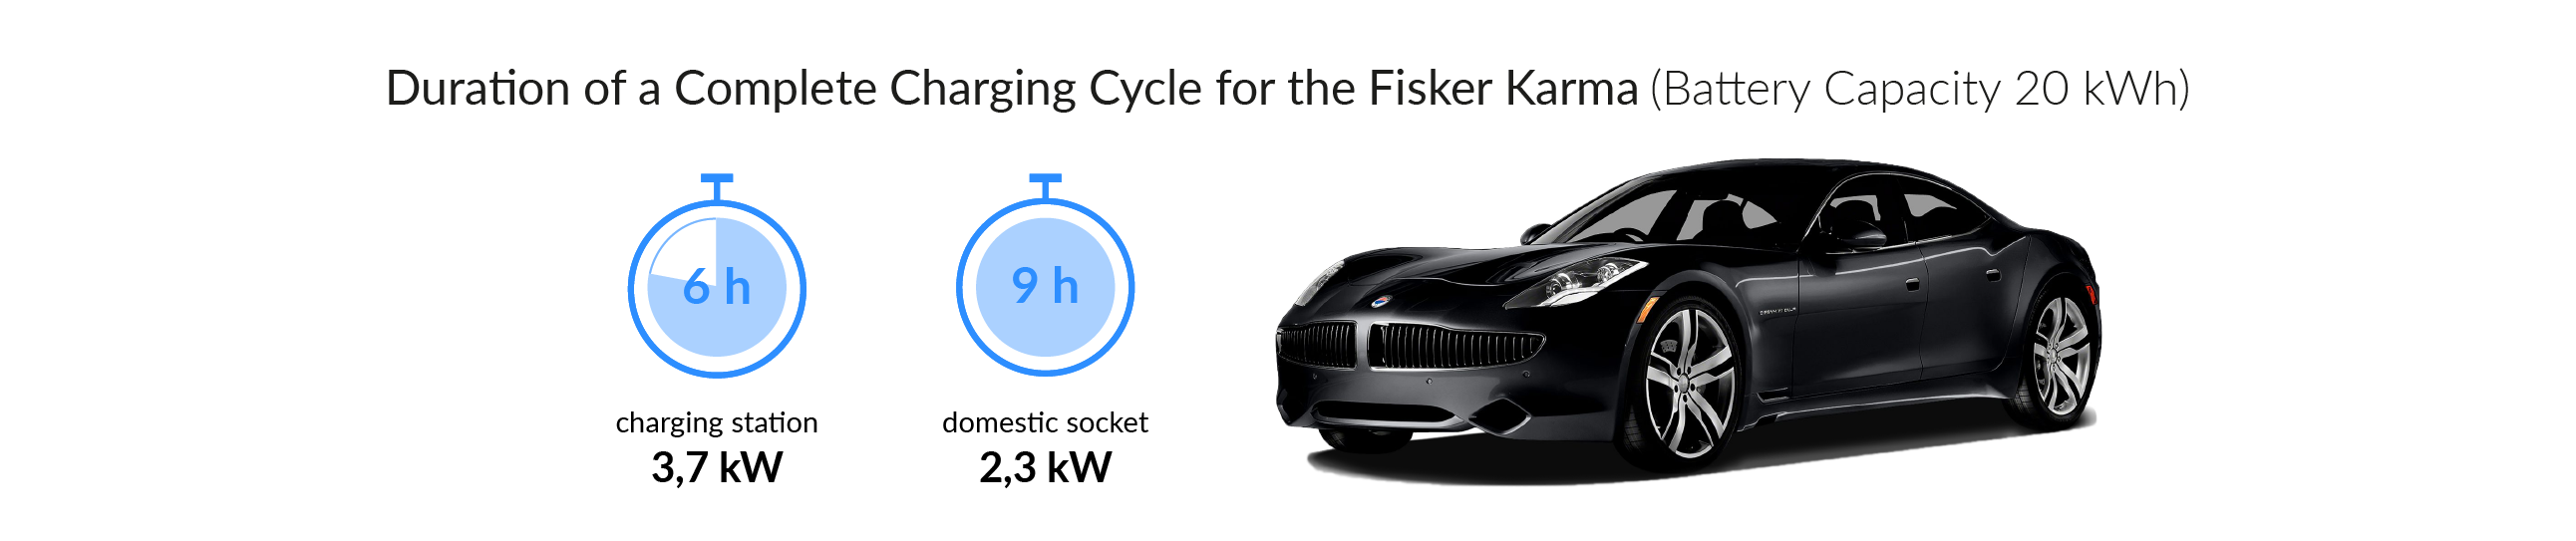 Charging time for the Fisker Karma